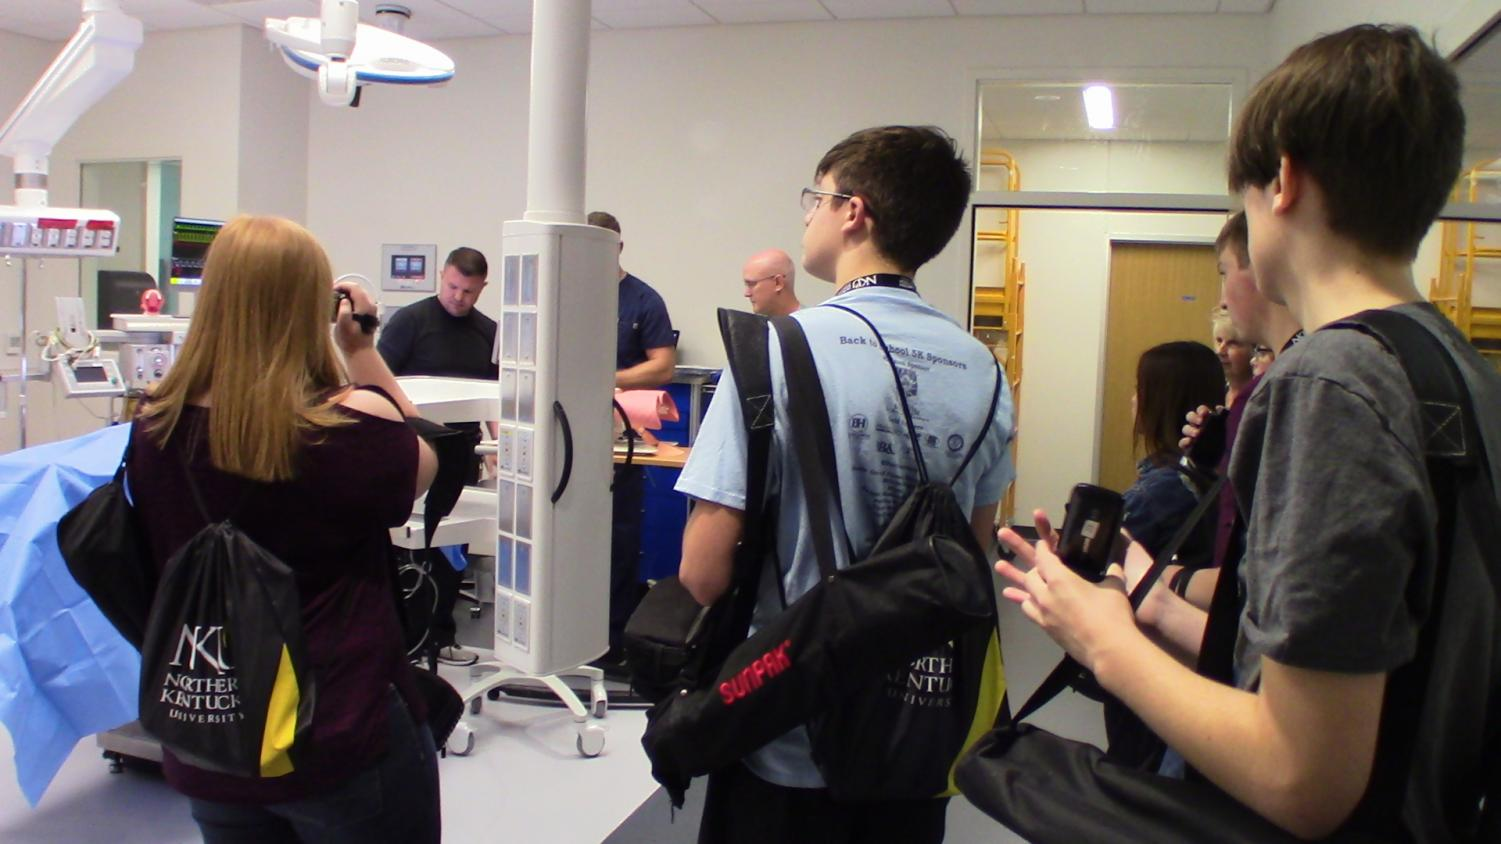 Students+take+turns+asking+questions+during+an+interview+at+the+Health+Innovations+Center.